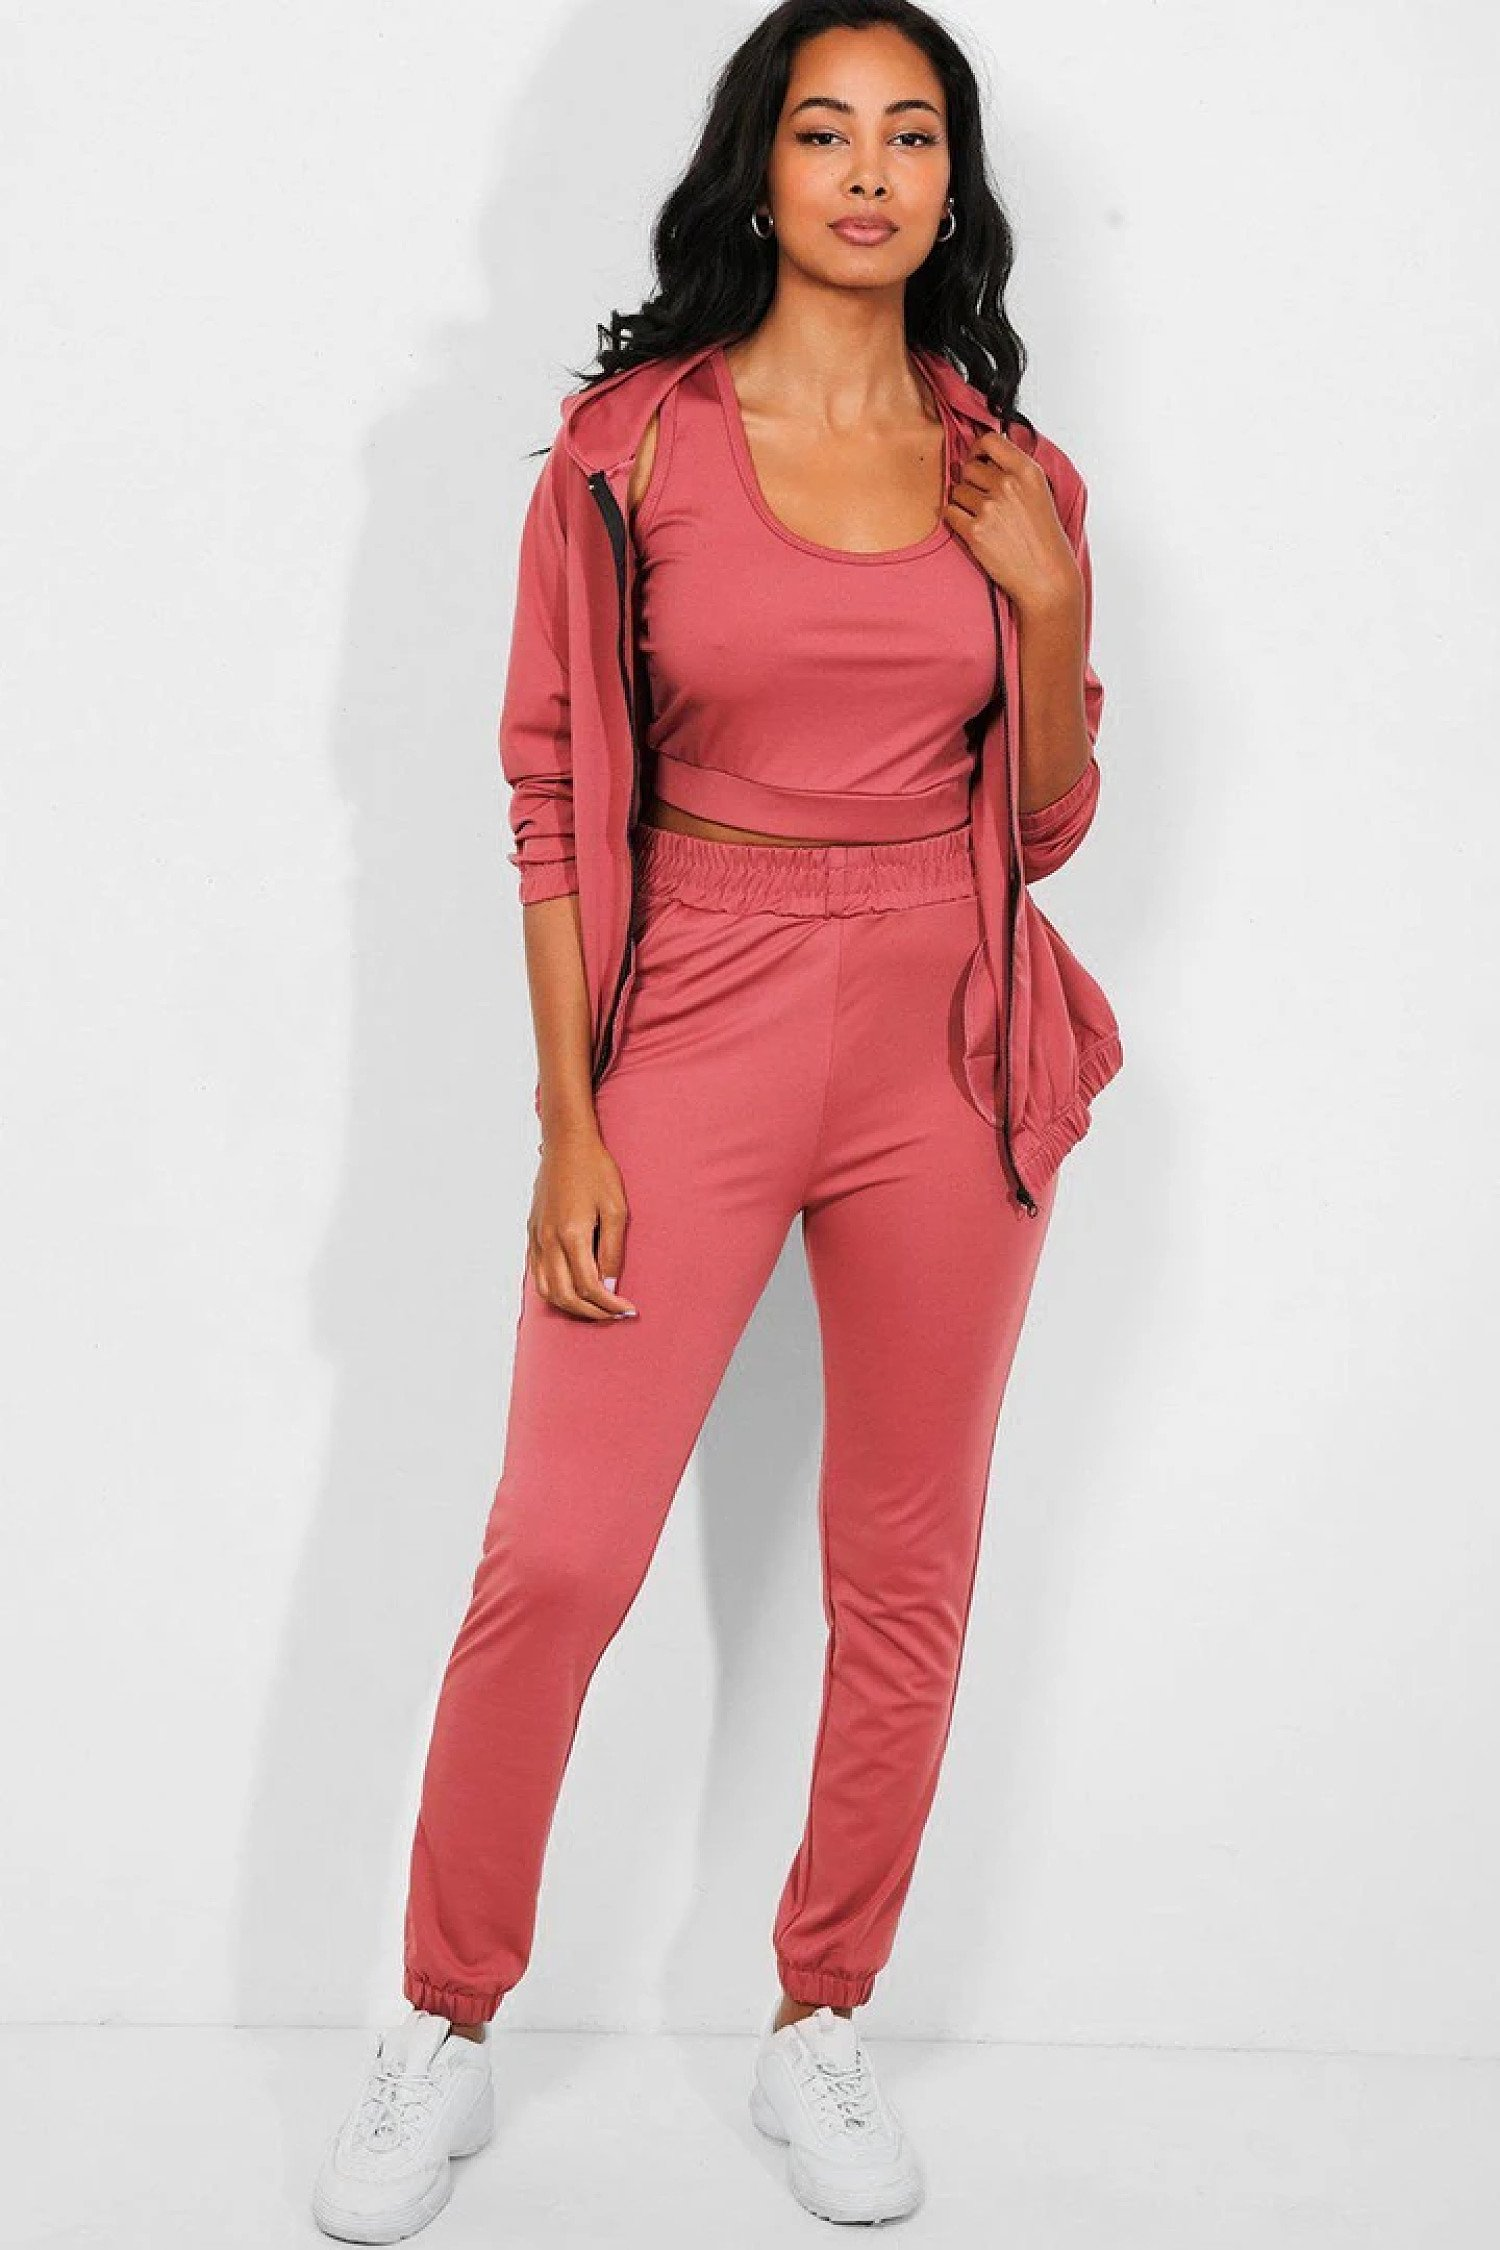 3 Piece Hooded Tracksuit Free Postage